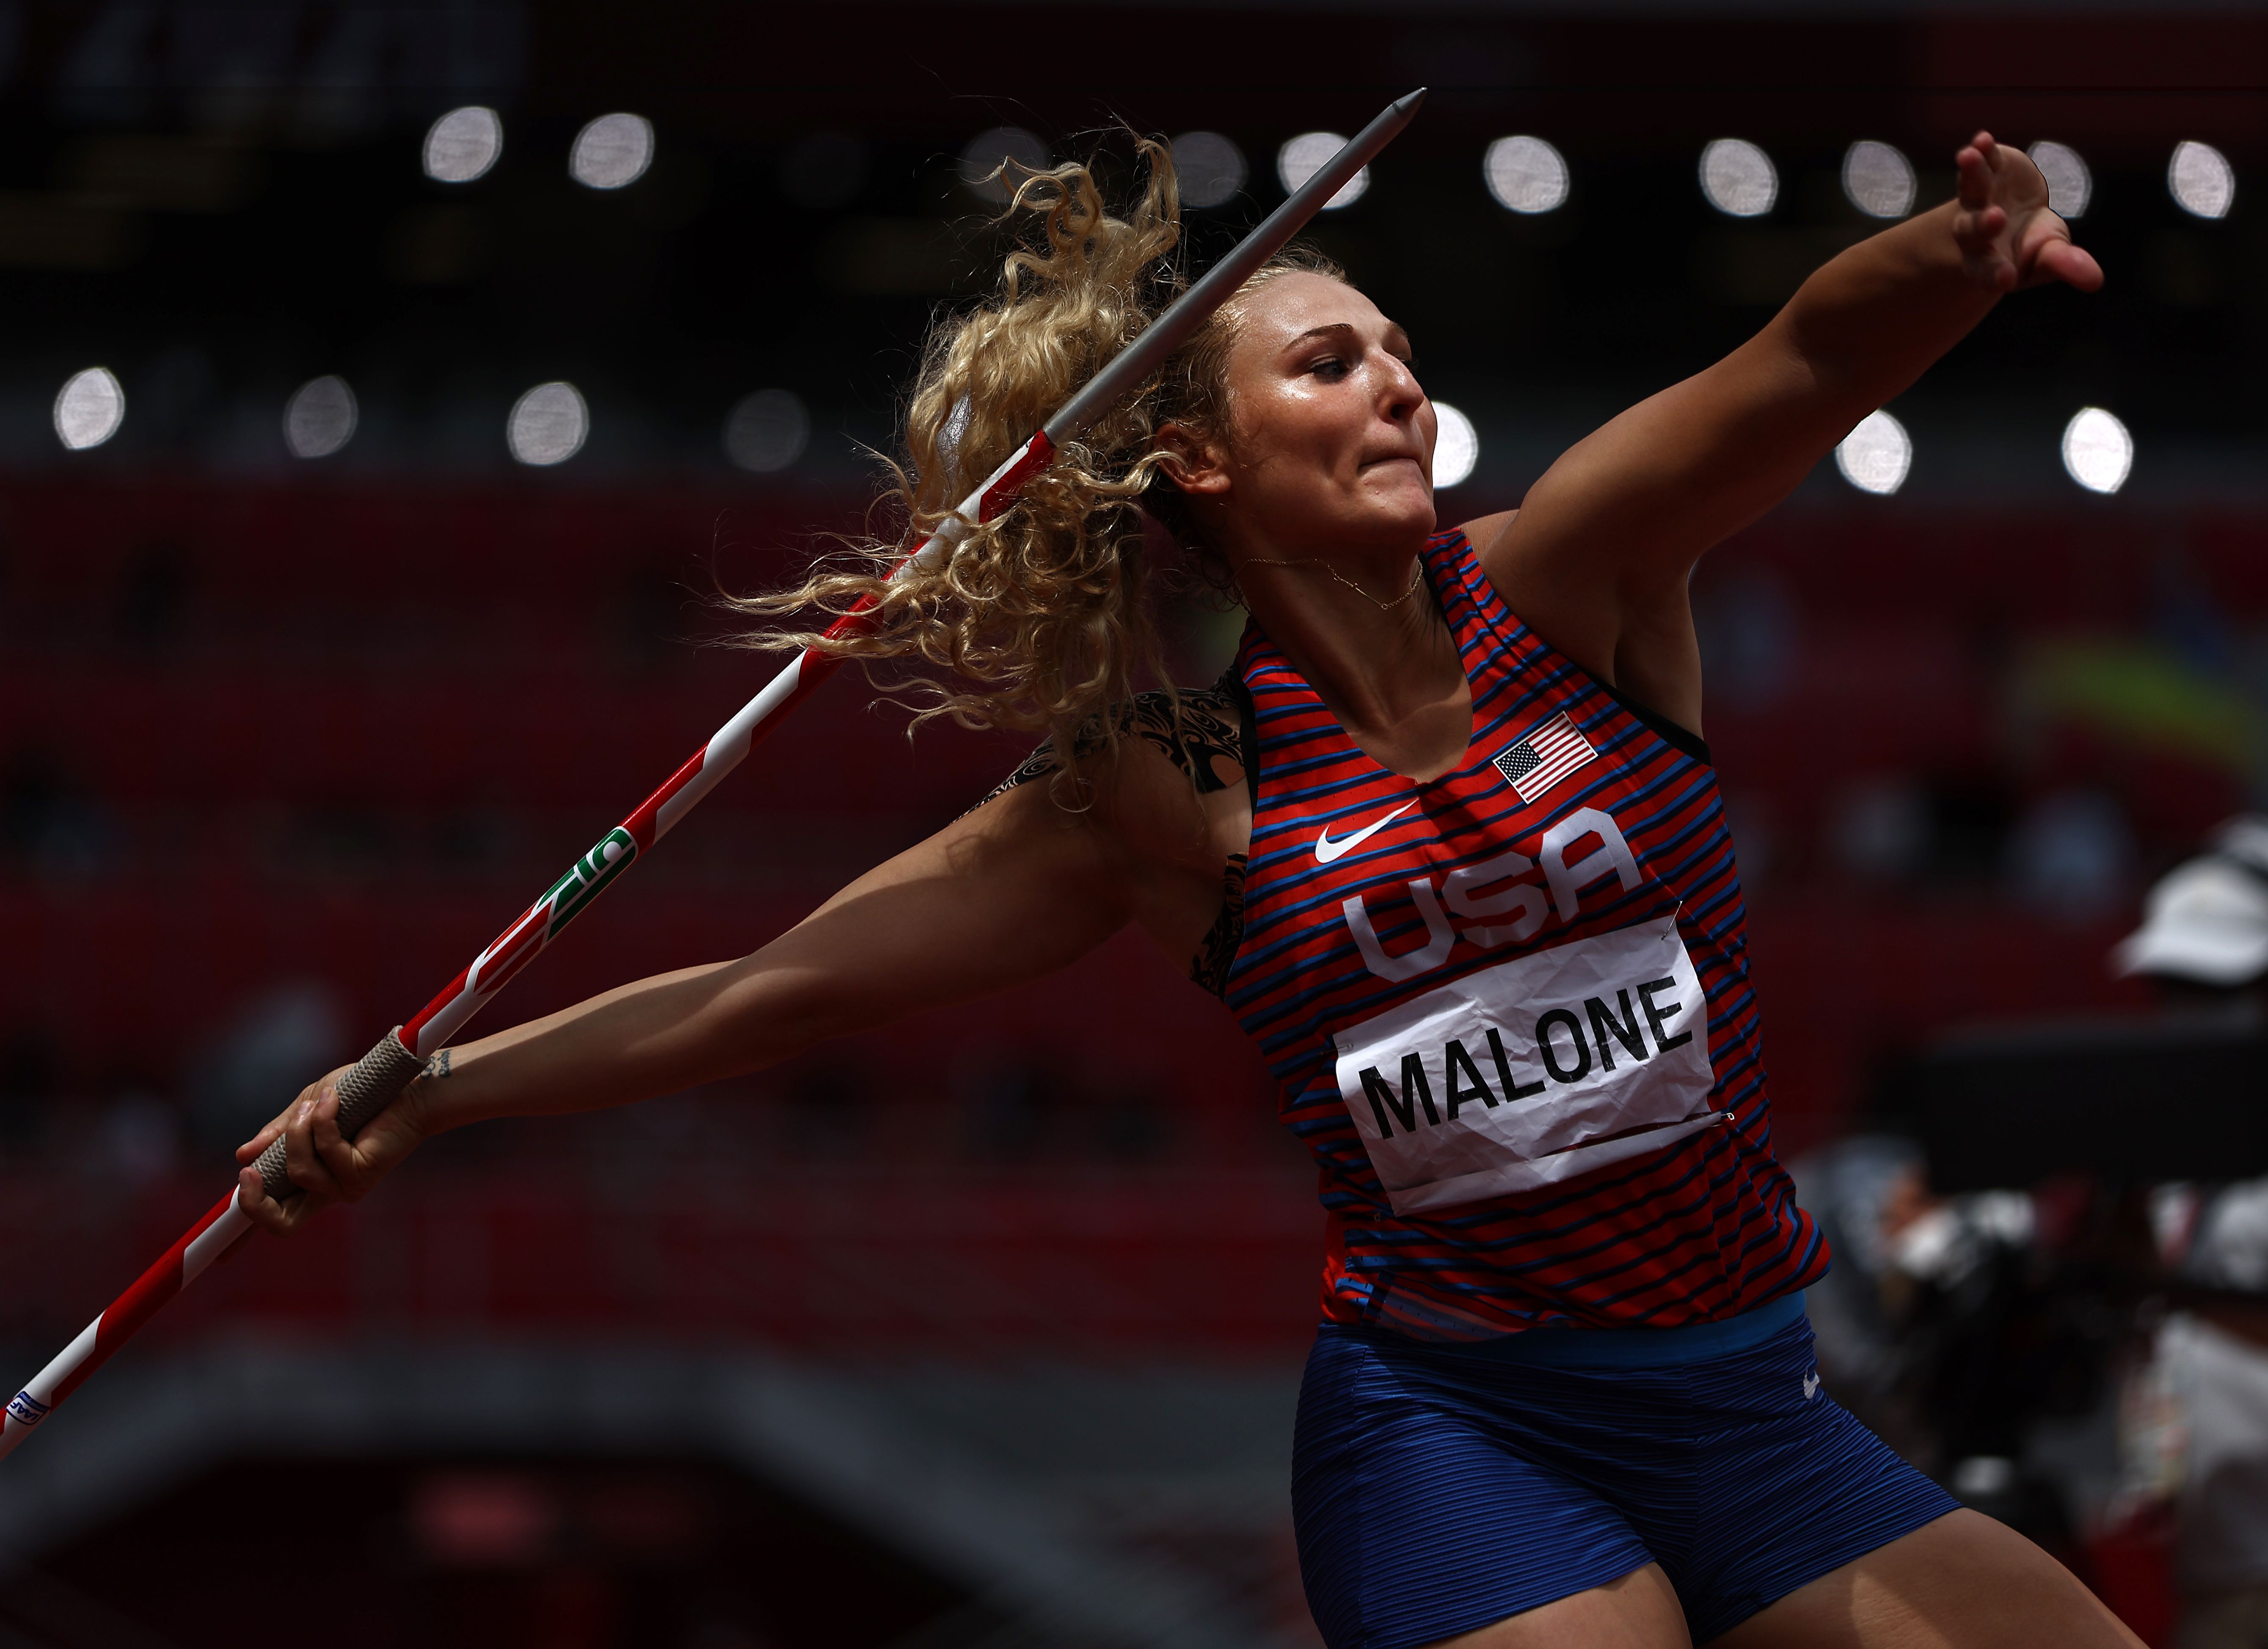 Maggie Malone of Team United States competes in the Women's Javelin Throw Qualification on day eleven of the Tokyo 2020 Olympic Games at Olympic Stadium on August 03, 2021 in Tokyo, Japan